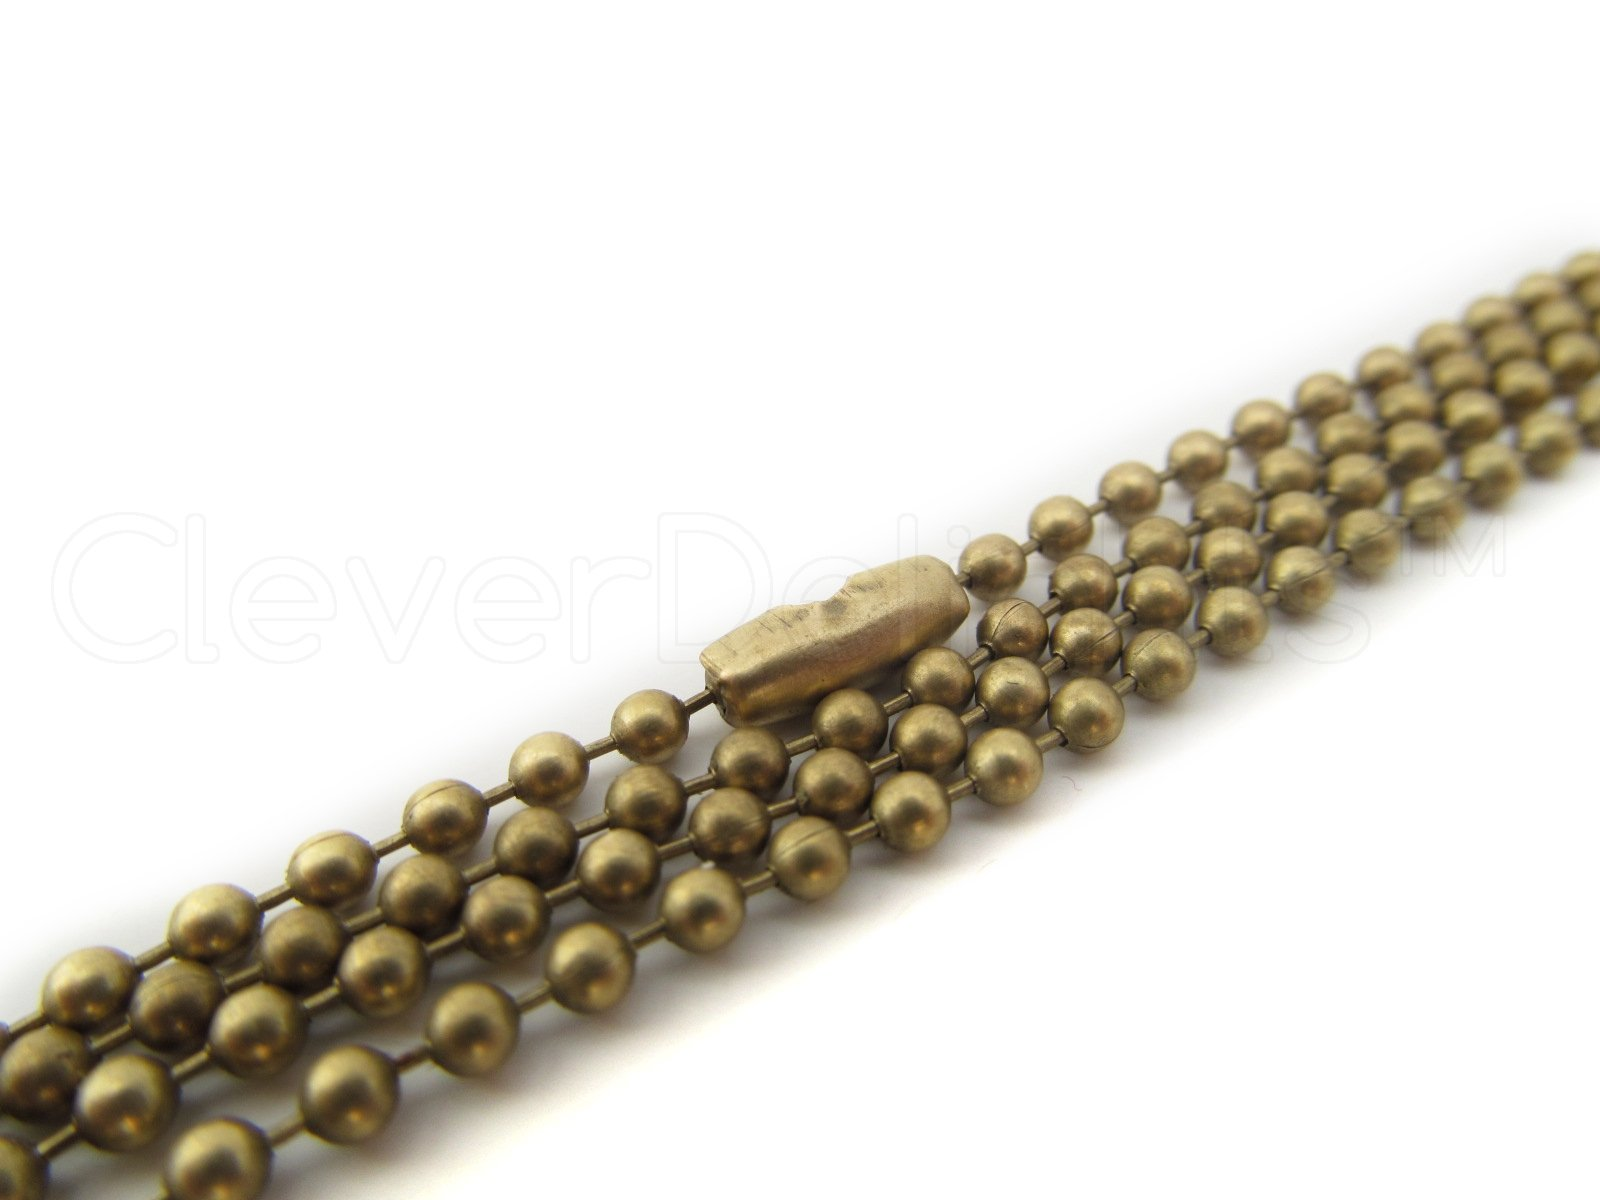 """20 CleverDelights Ball Chain Necklaces - Antique Bronze Color - 24 Inch - Jewelry Findings - 2.4mm Ball - Adjustable Antiqued Necklaces - 24"""" Length"""